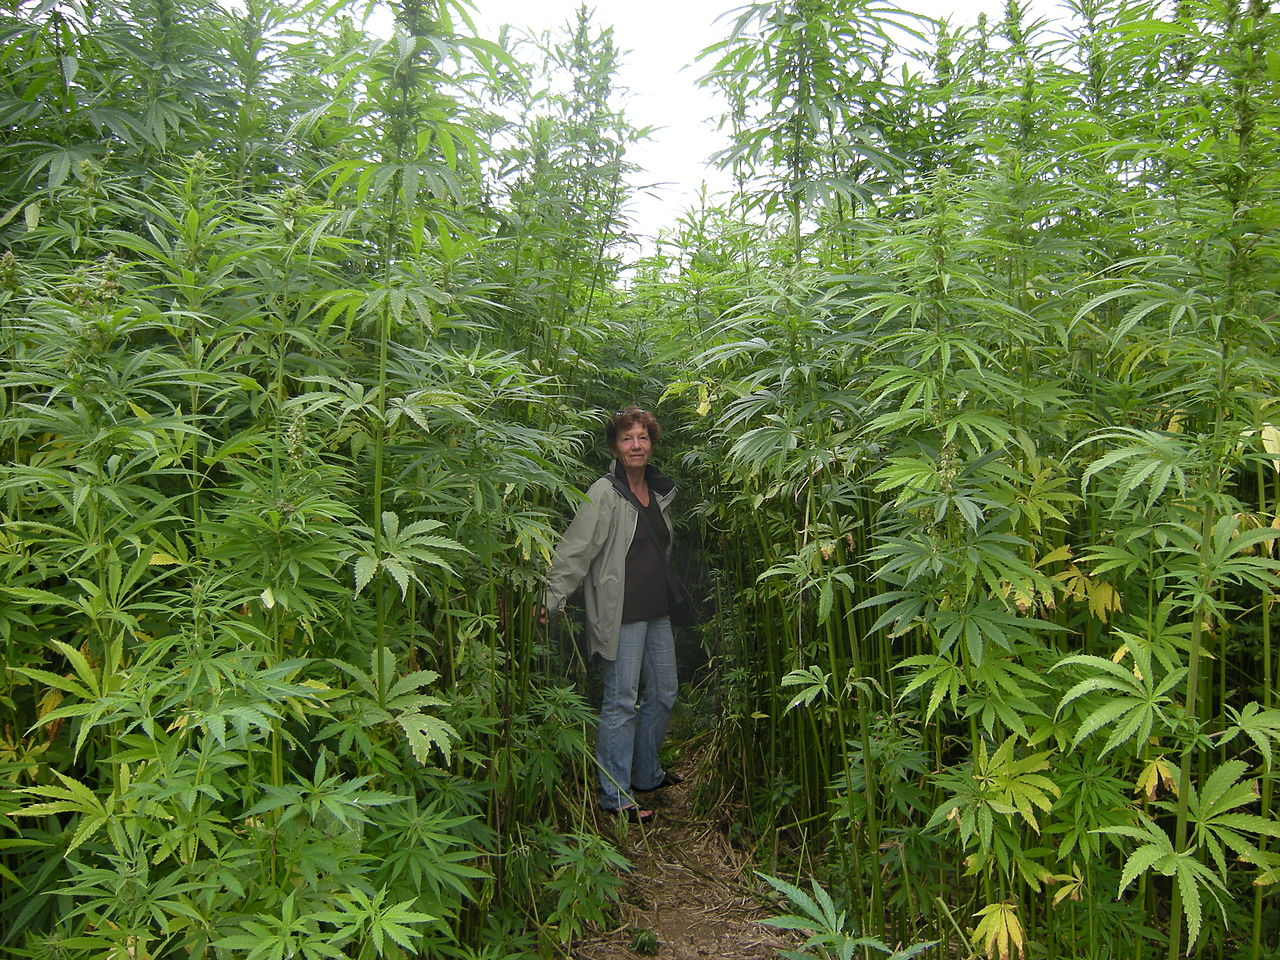 Hemp Farm, Photo courtesy - Barbetorte